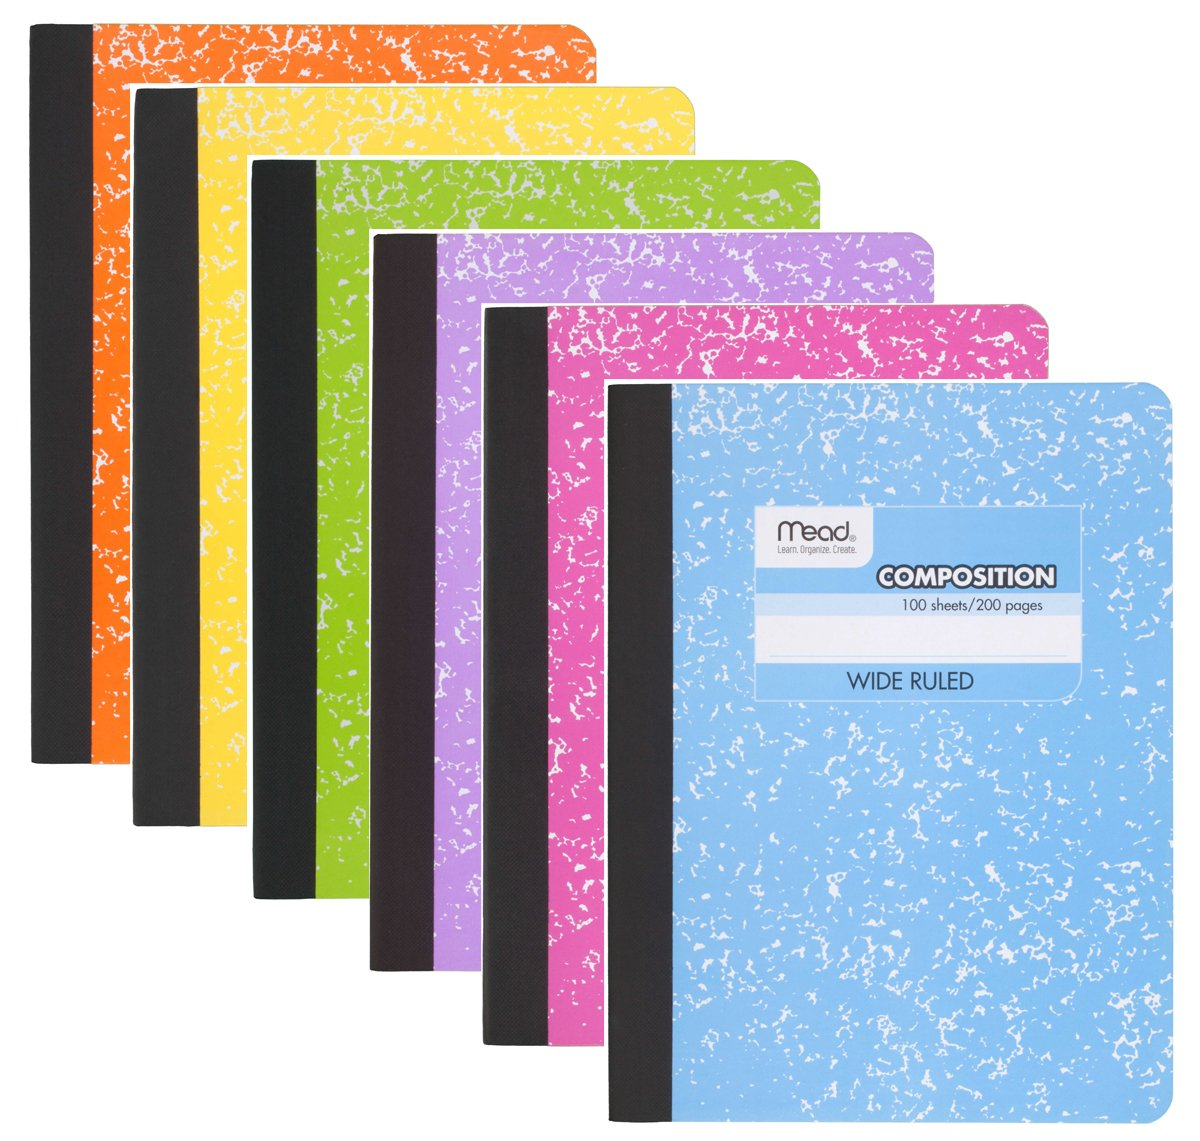 Mead Composition Book, Notebook, Wide Ruled paper, 100 sheets (200 Pages) , Pastel Color Notebooks, 6 Pack